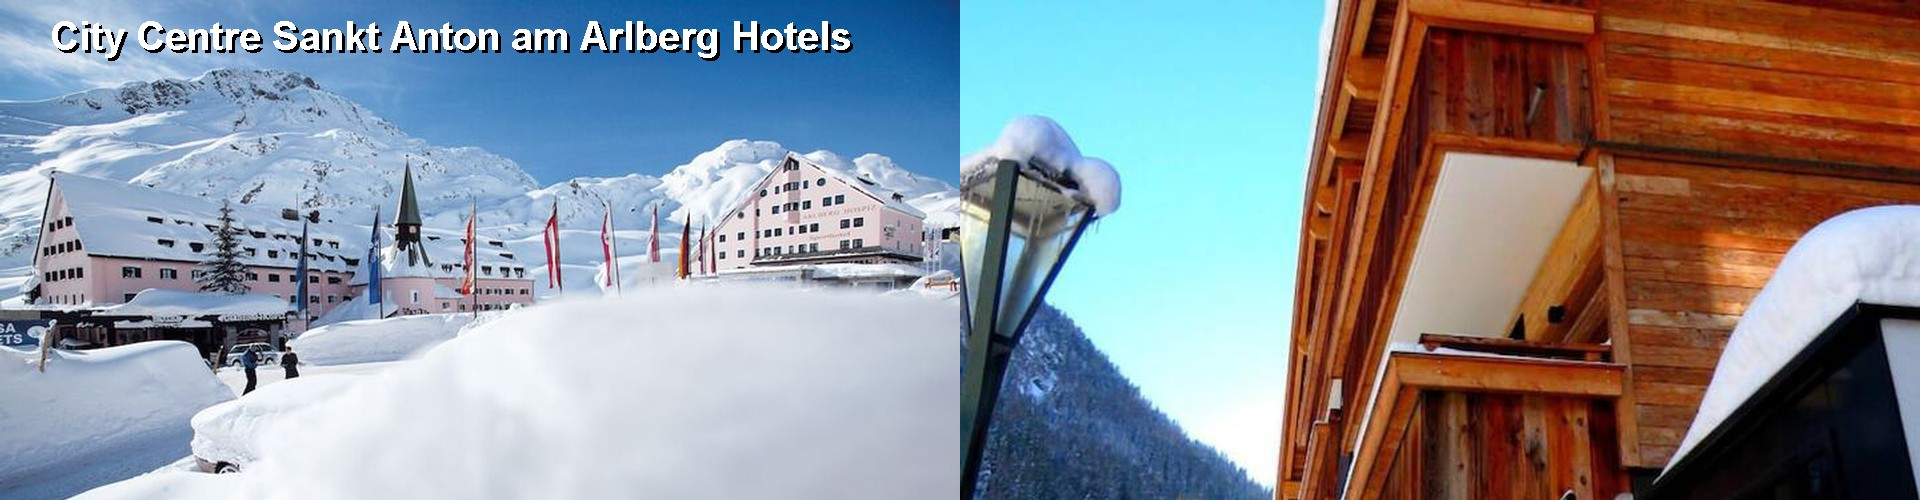 5 Best Hotels near City Centre Sankt Anton am Arlberg